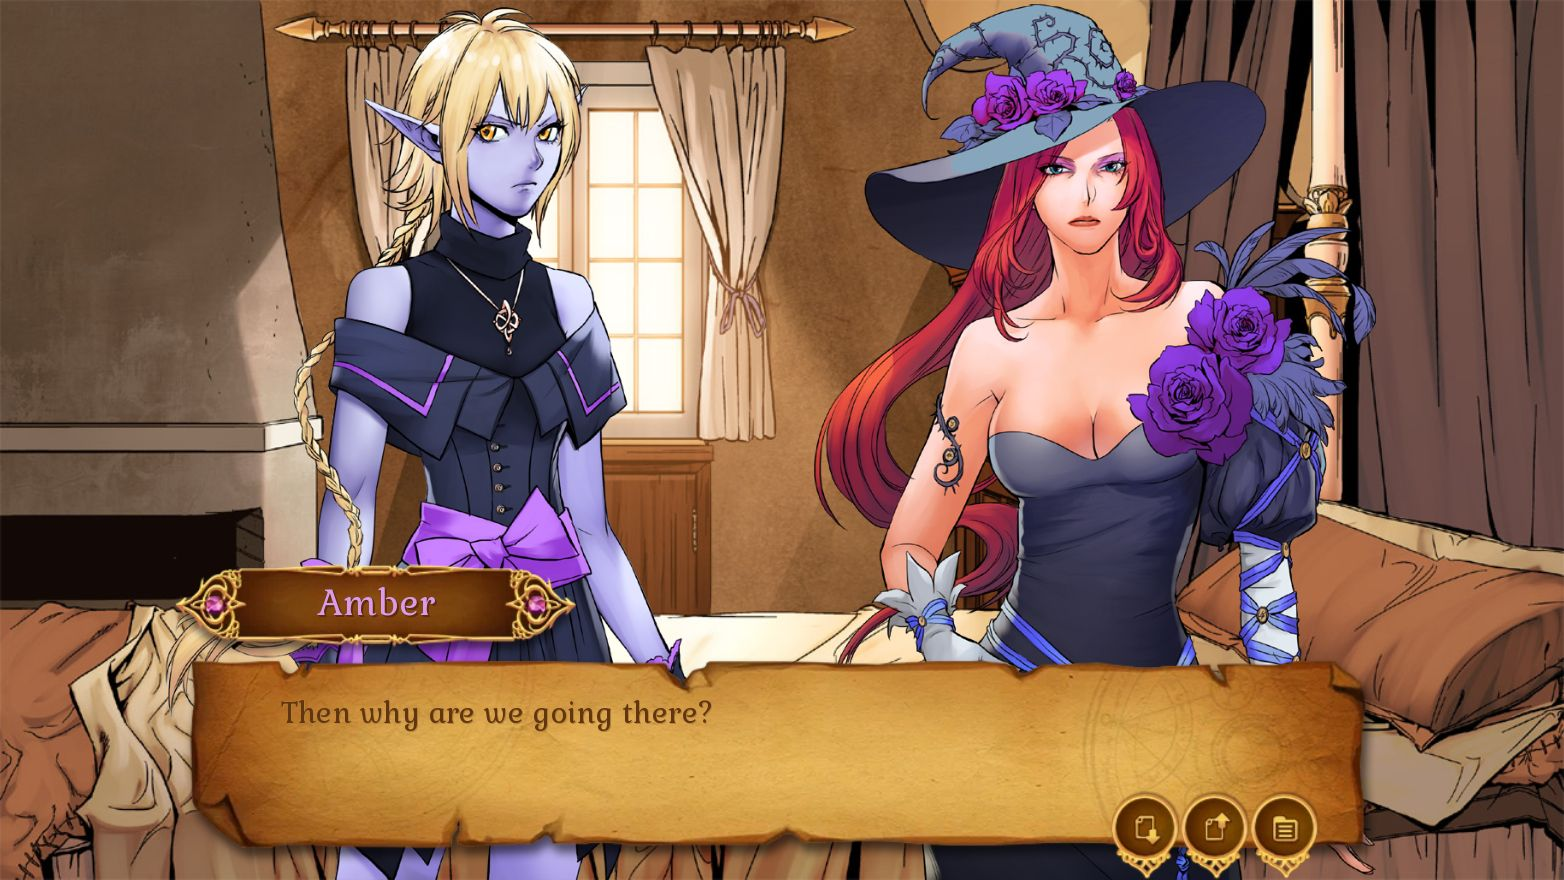 Two feminine characters stand in a bedroom. One is wearing a witch's hat and has a dressed adorned with roses, while the other has pointed ears. A dialogue box overlay says, 'Amber: Then why are we going there?'